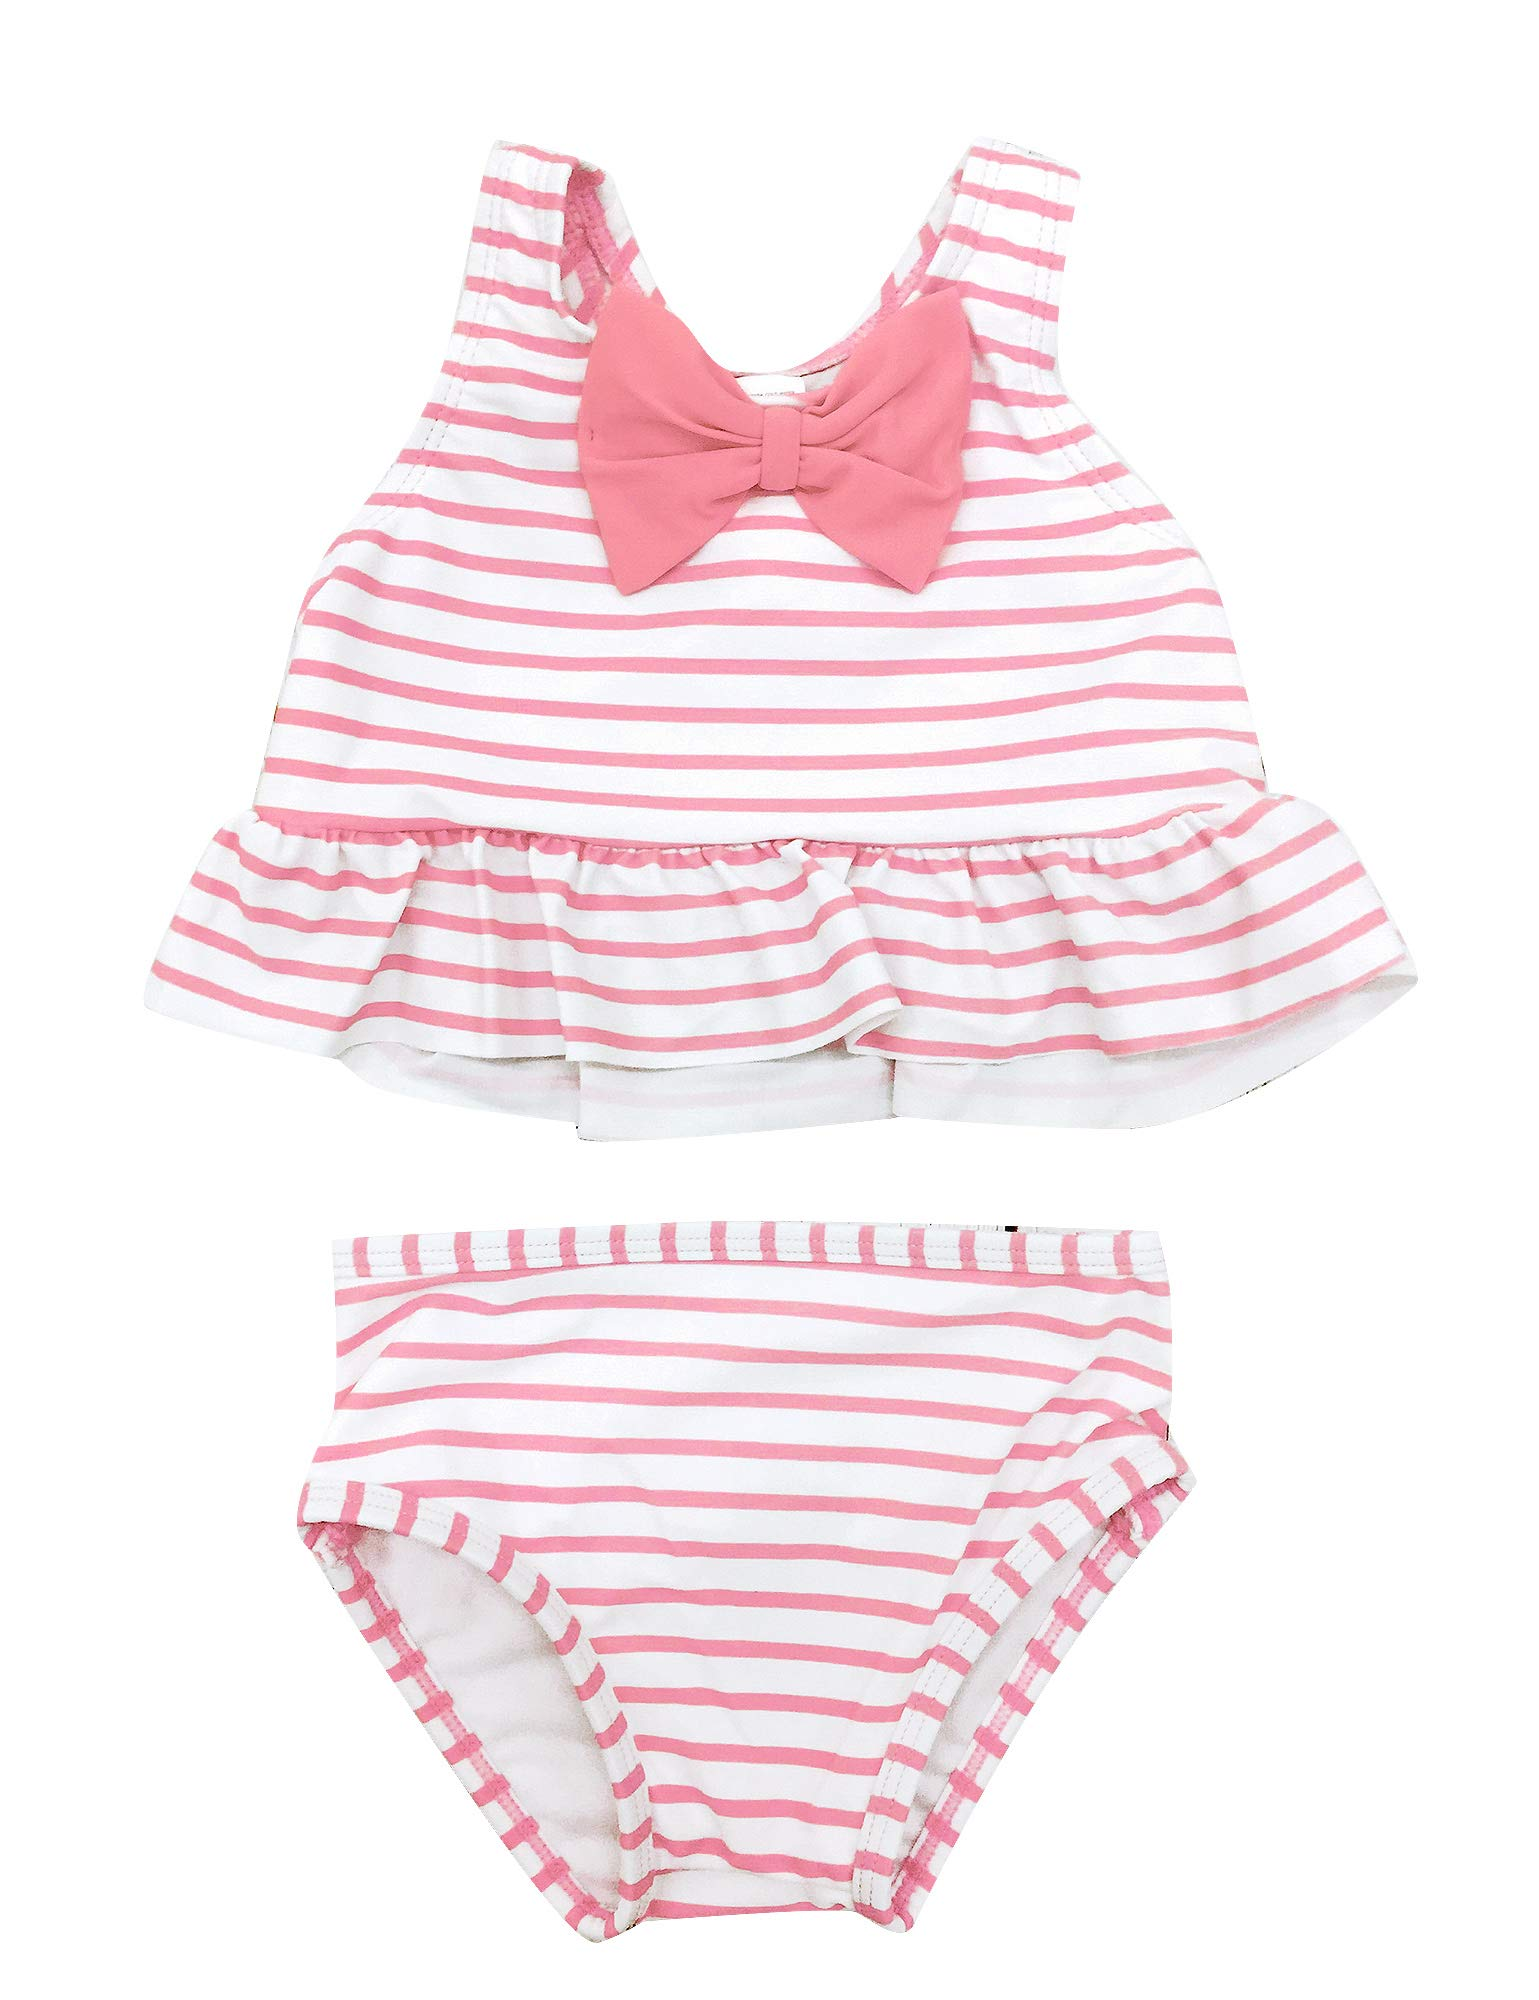 d55fa7a0ac3d0 luvamia Baby Toddler Girls Two Piece Swimsuit Striped Ruffle Tankini with  Bow 6M-2Y product